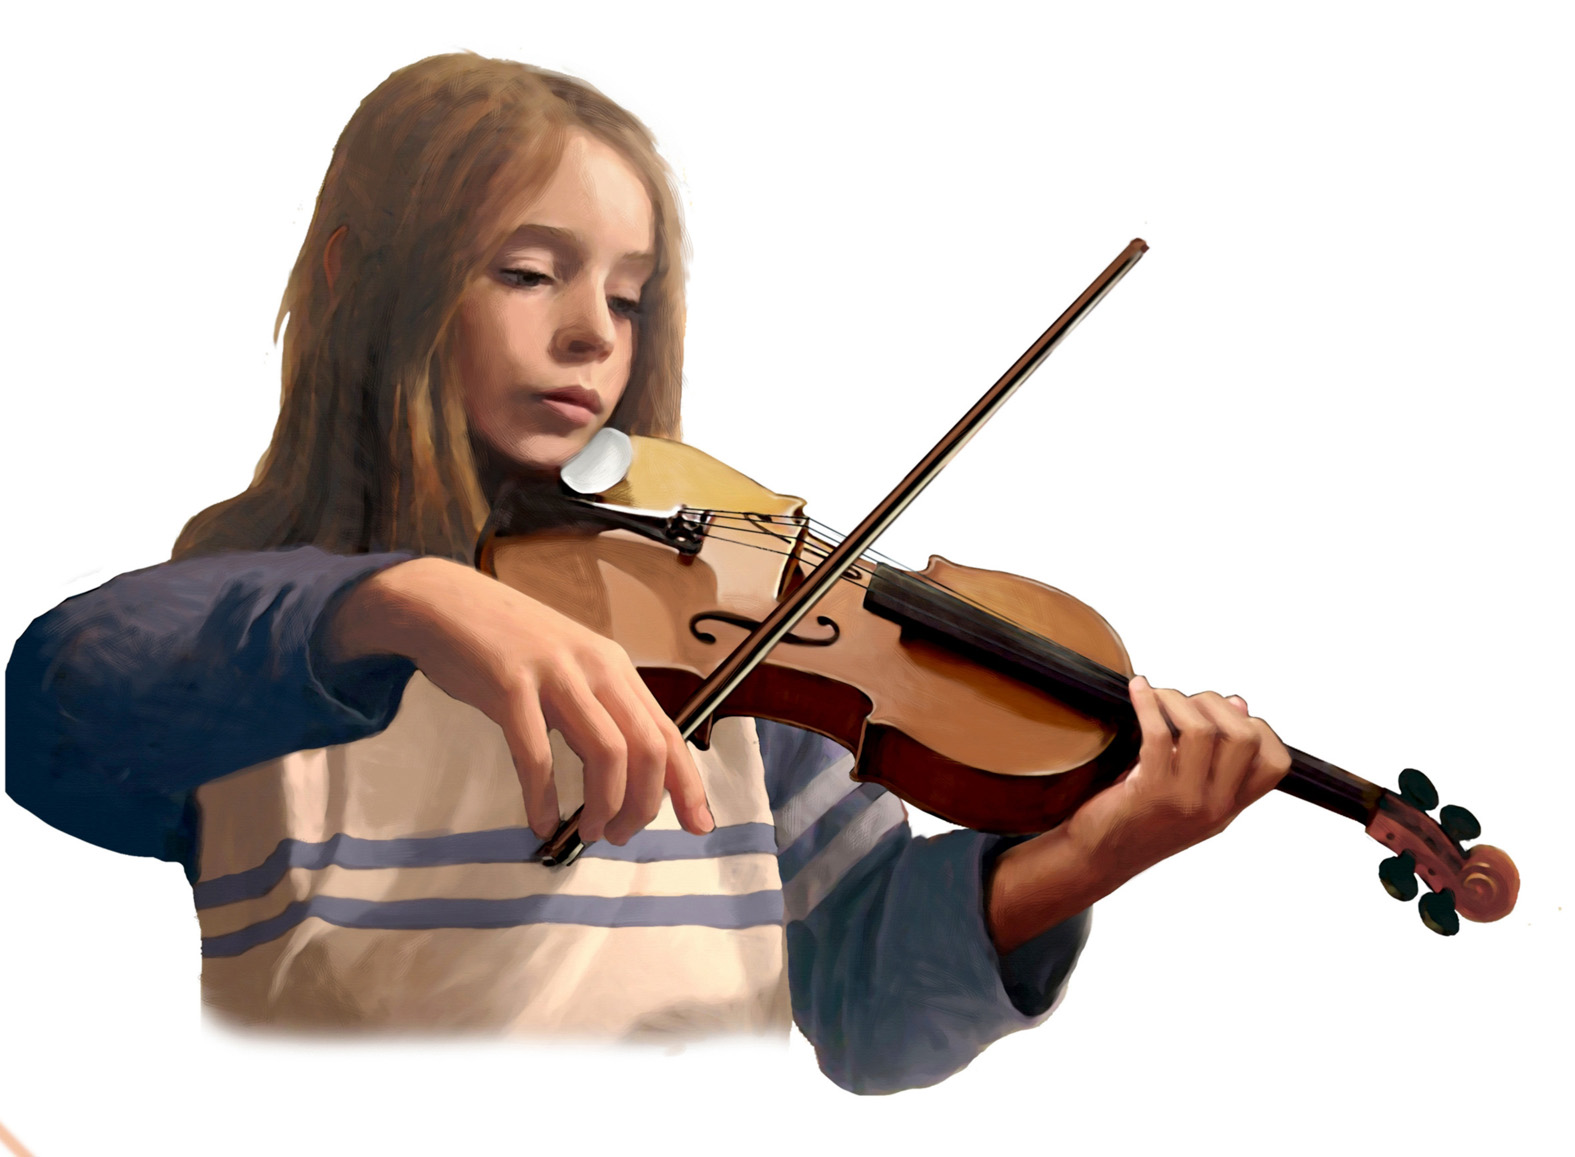 girl and violin.jpg